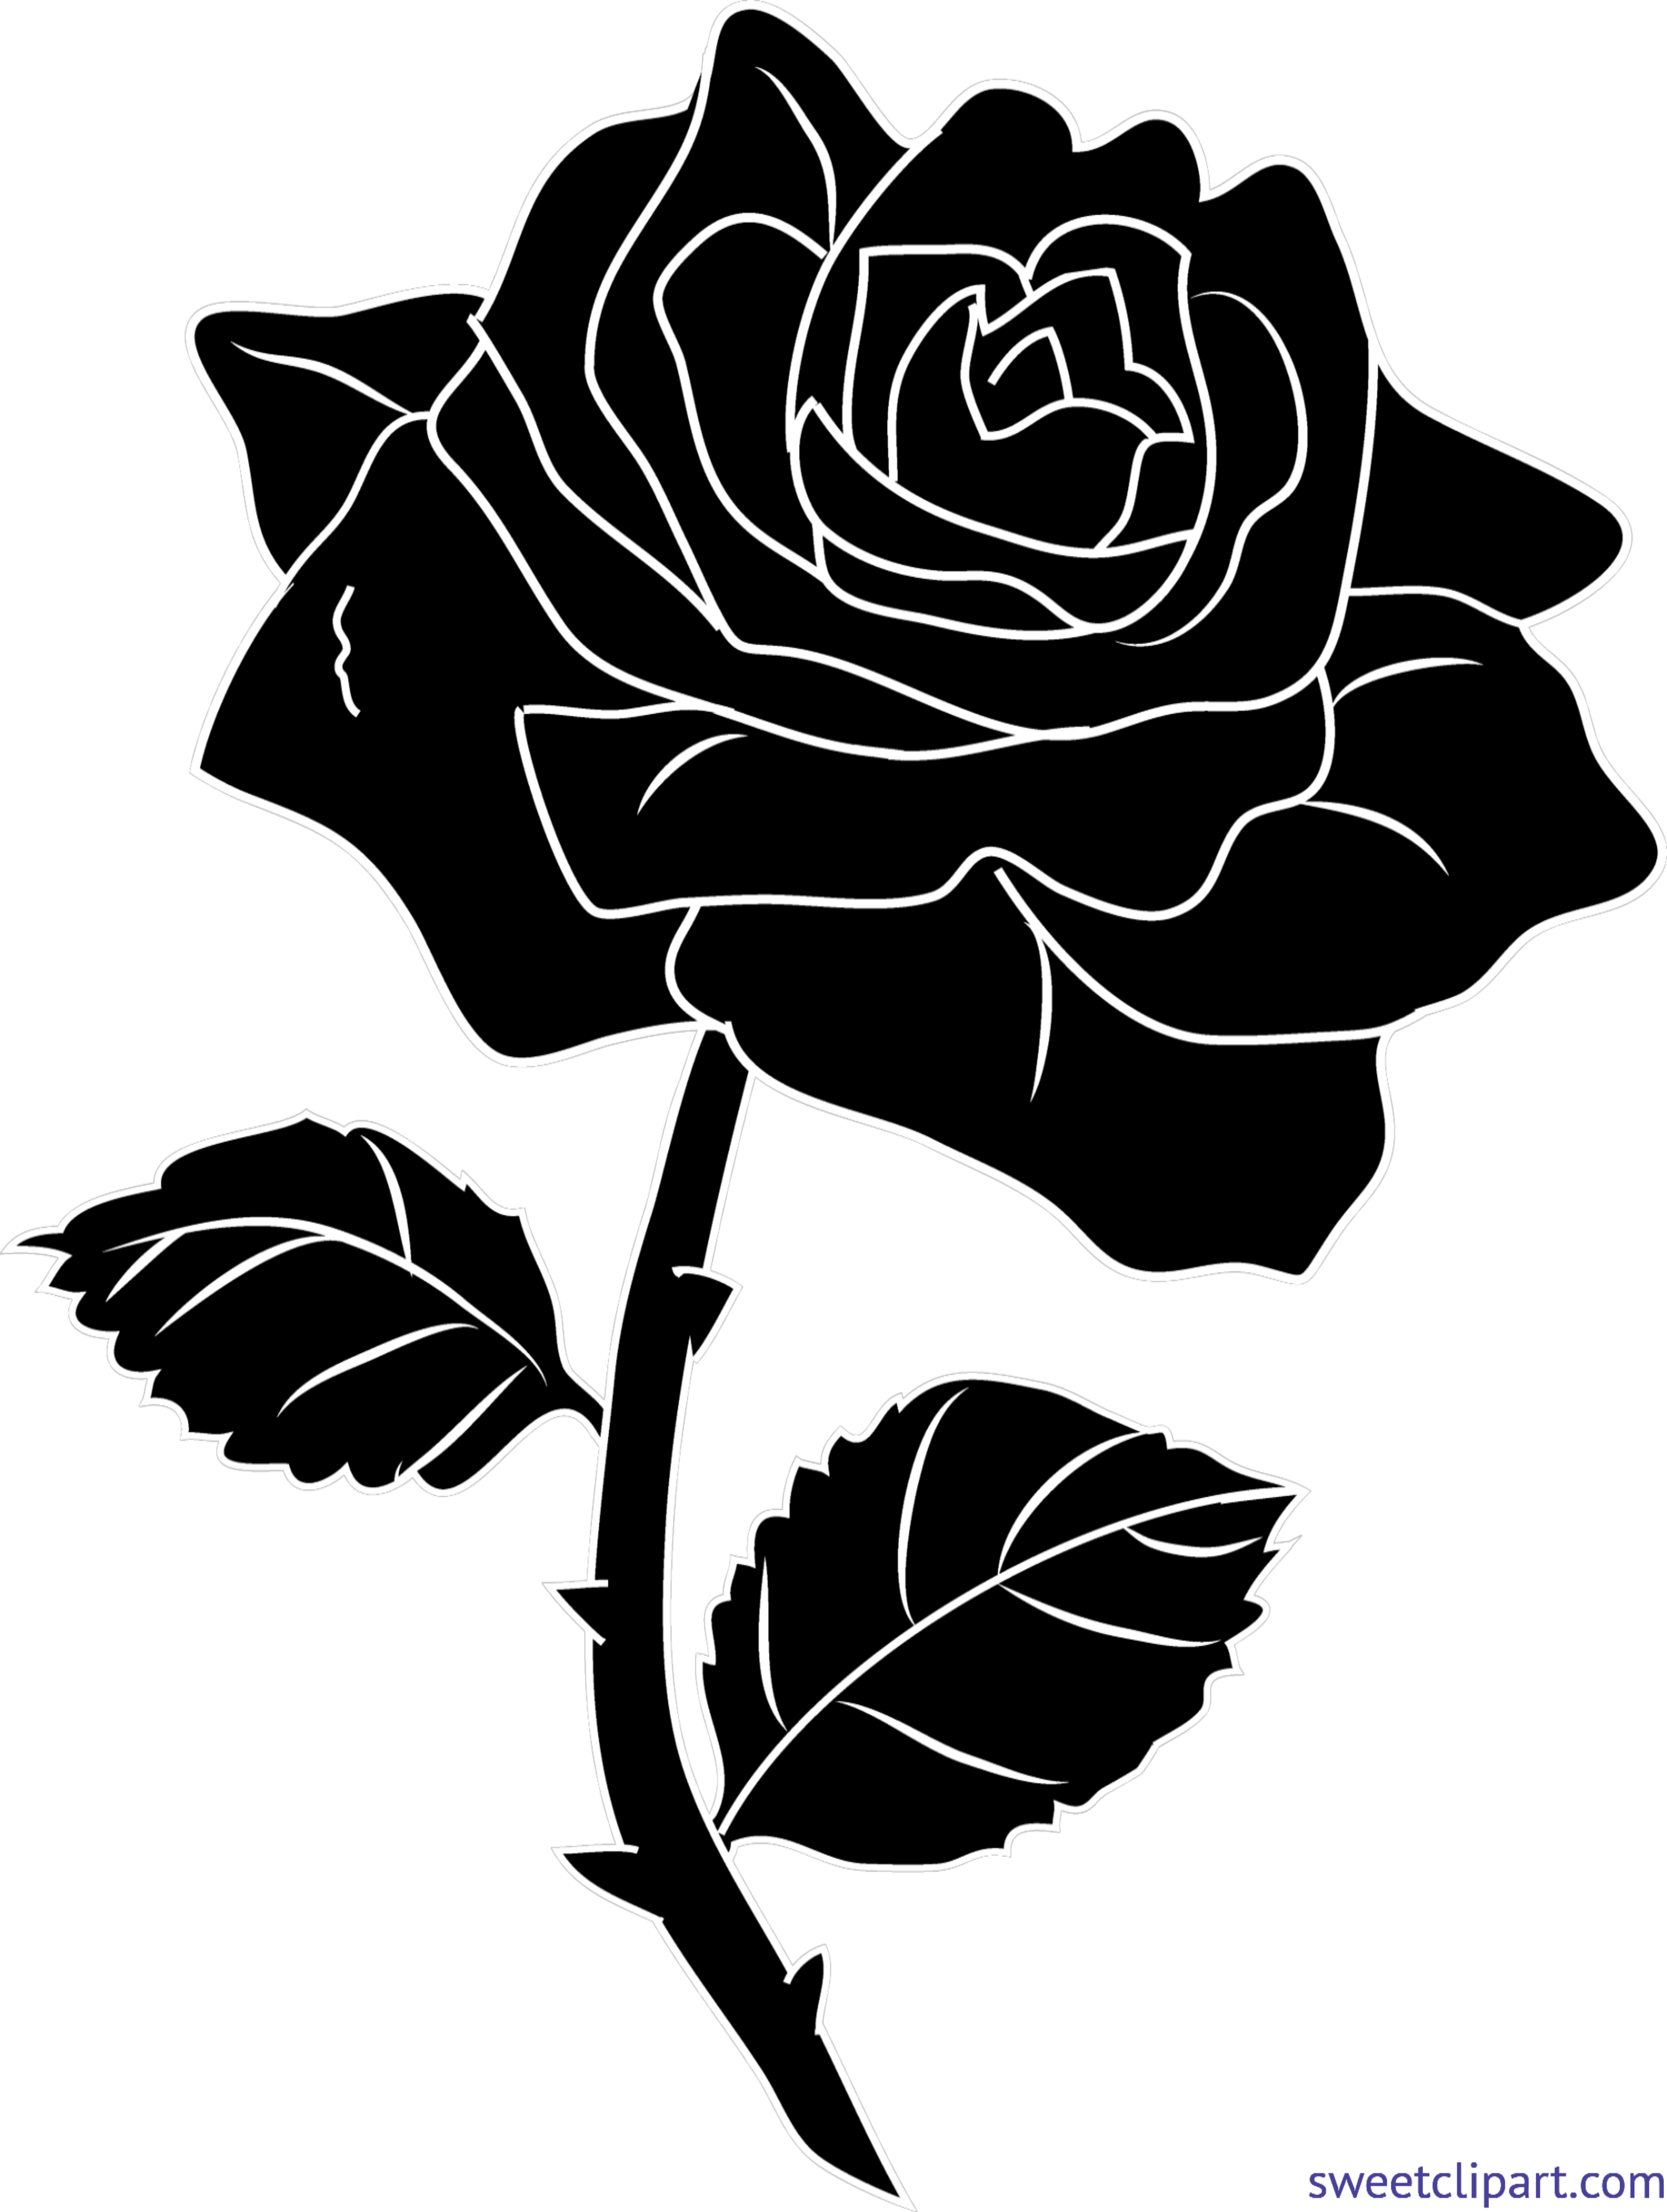 Rose silhouette clipart svg freeuse stock Rose 3 Silhouette Clip Art - Sweet Clip Art svg freeuse stock